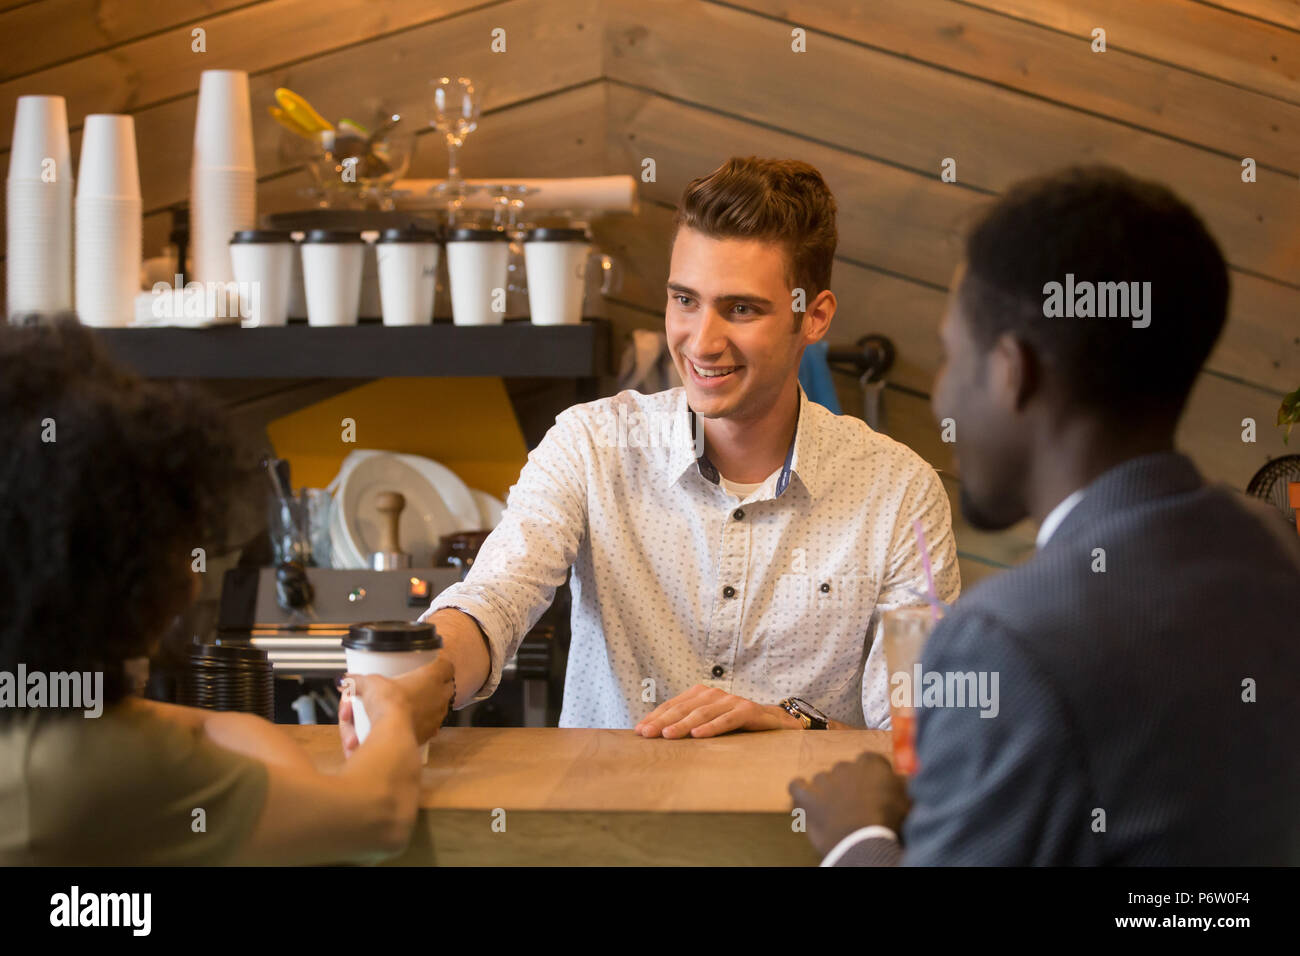 Caucasian barista serving coffee to black girl during date - Stock Image